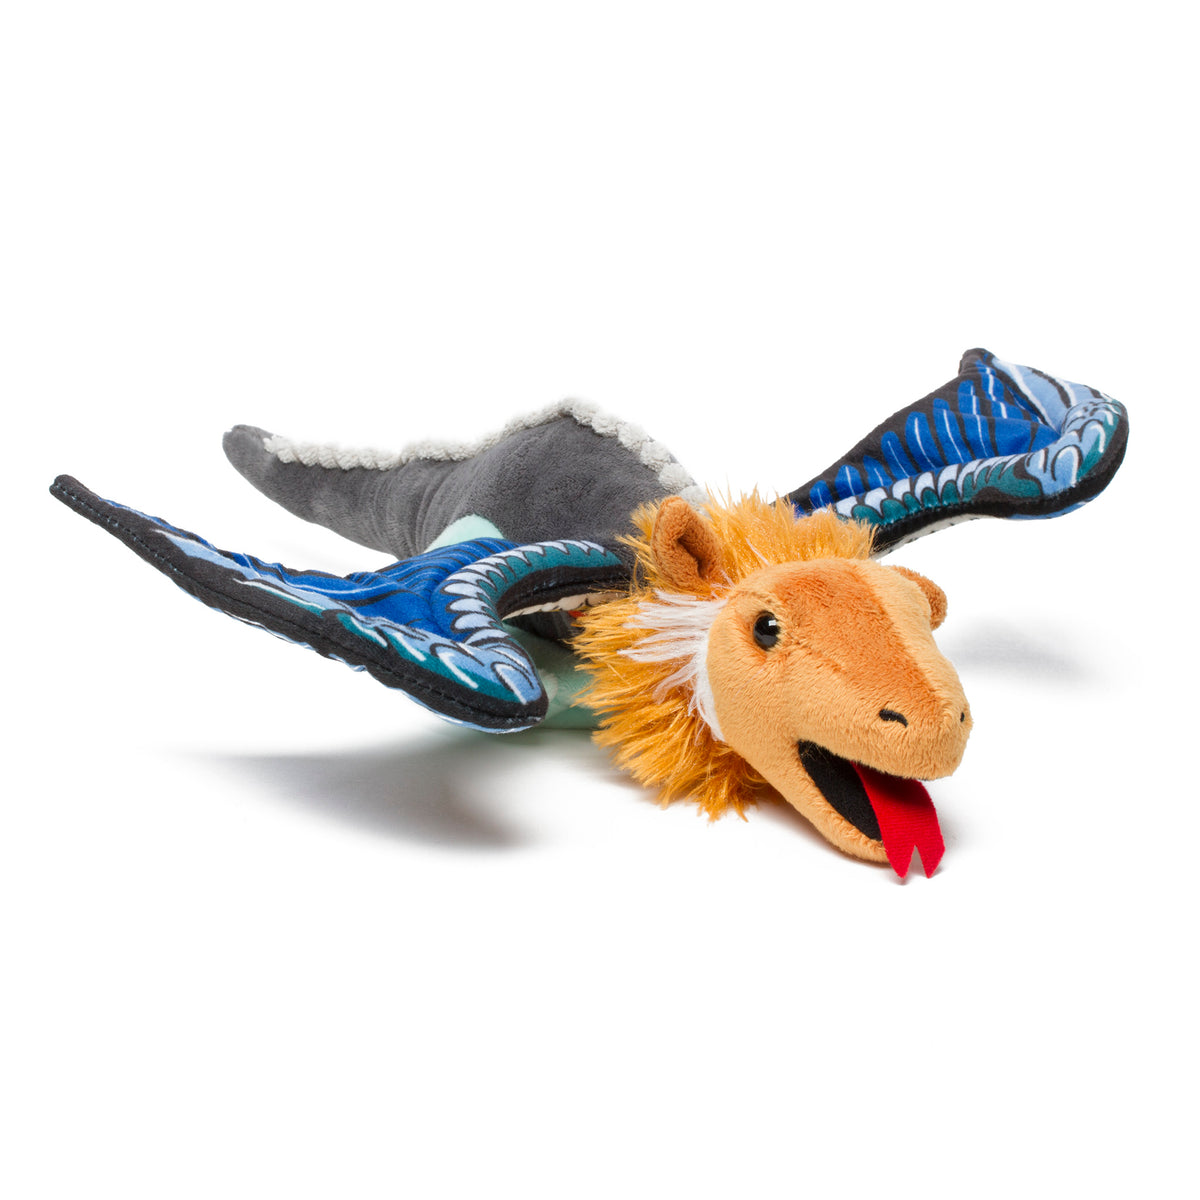 Plush Dragon Inspired by Illuminated Manuscript Bestiary  | Getty Store